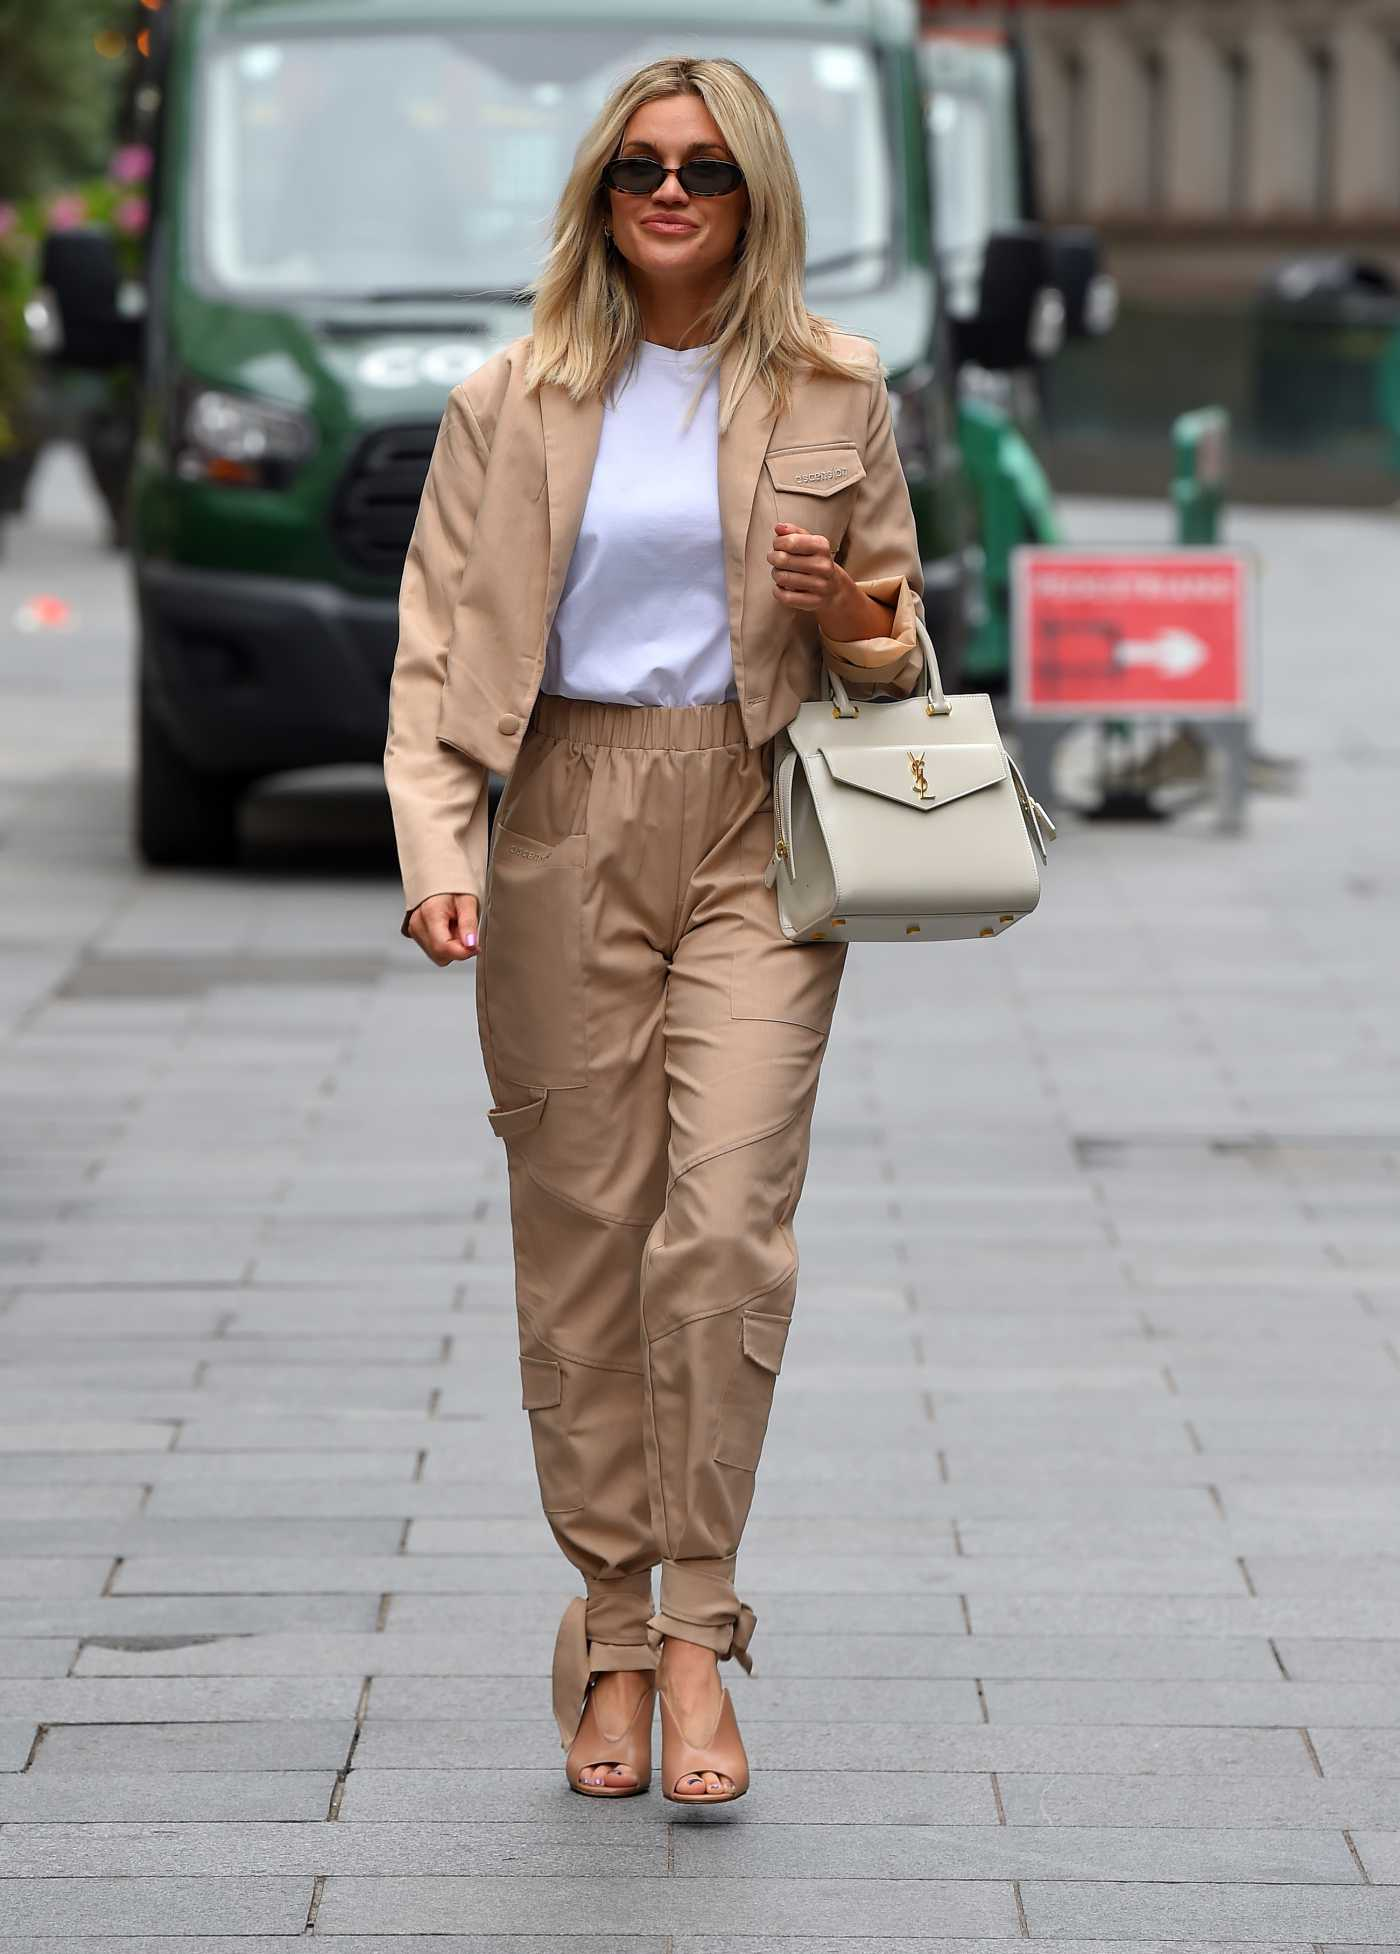 Ashley Roberts in a Beige Suit Leaves the Global Radio Studios in London 06/29/2020